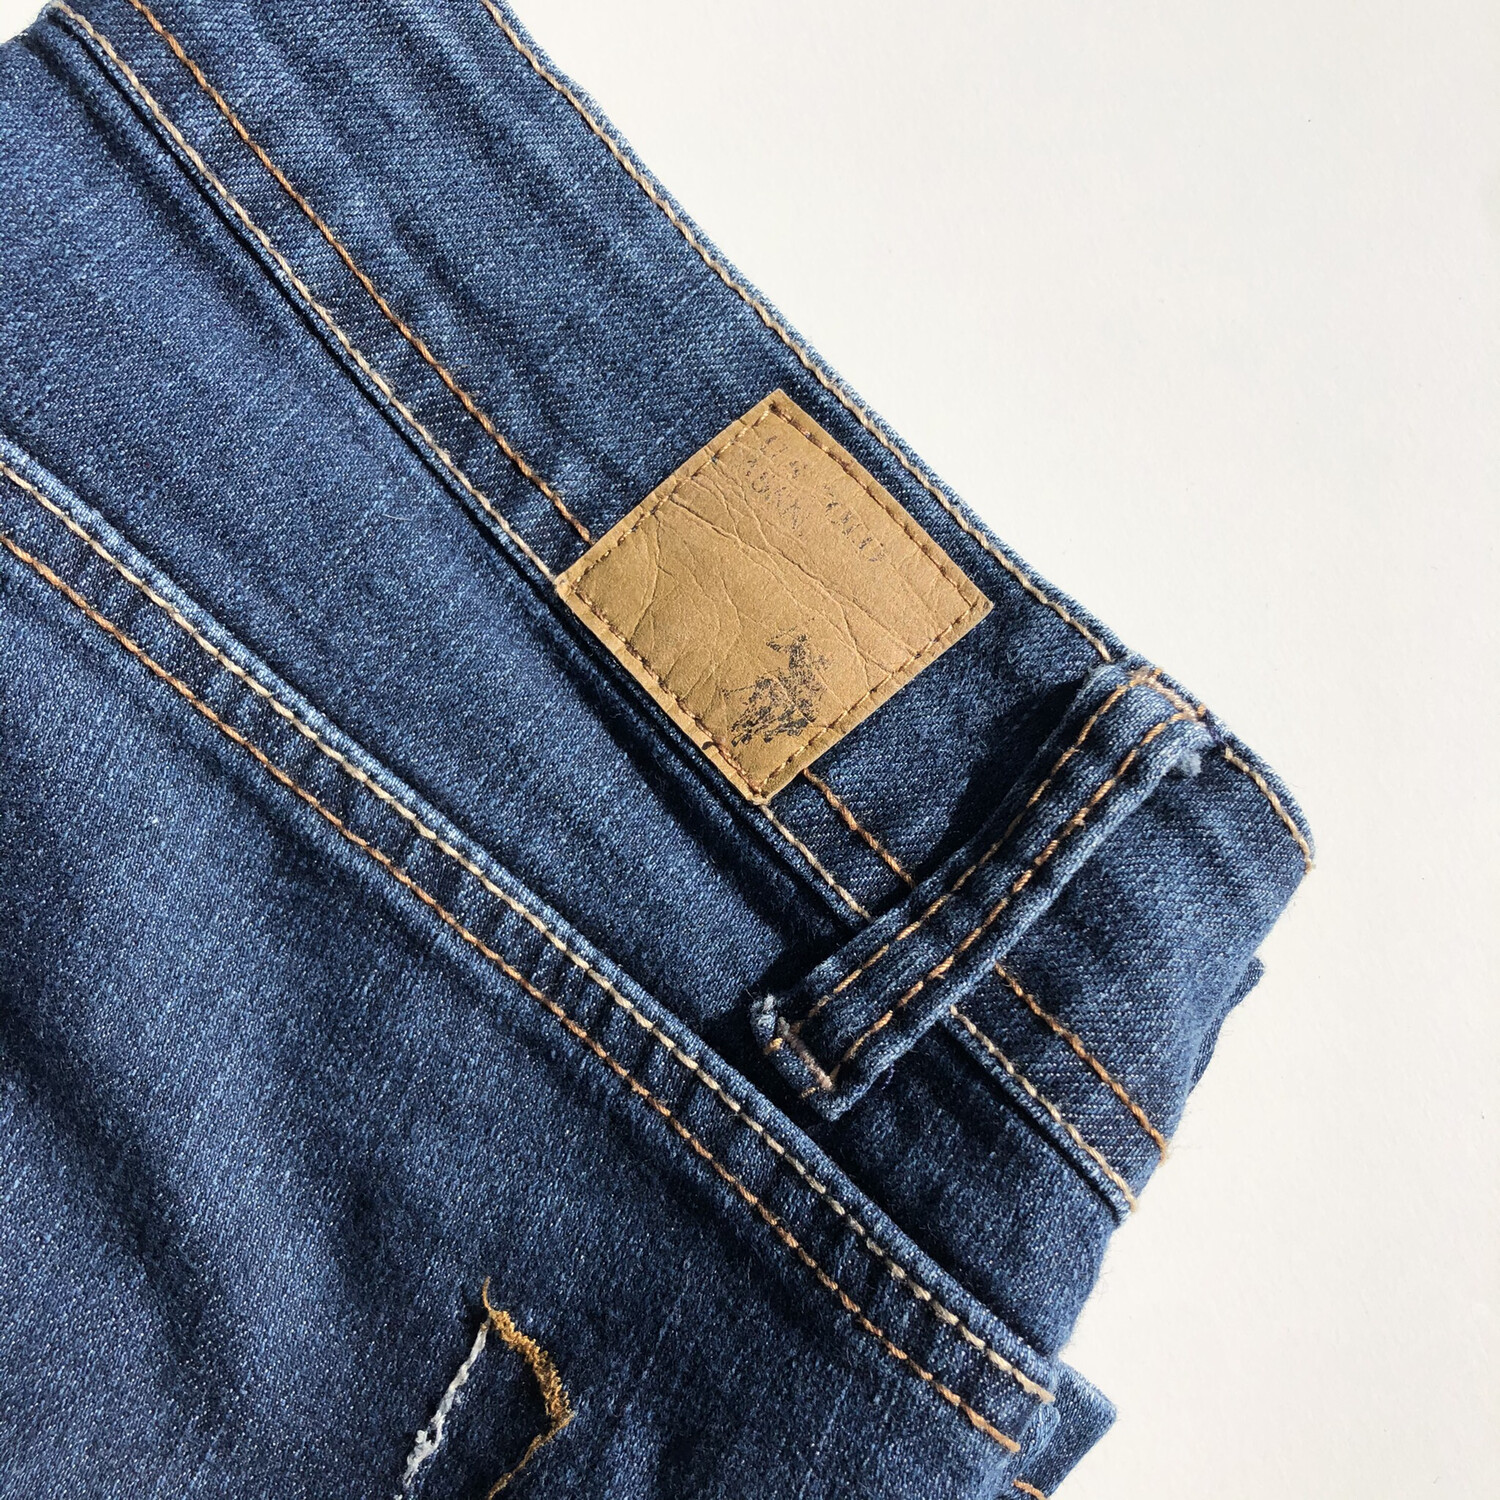 U.S. POLO ASSN Jeans: SIZE Approx 8-10